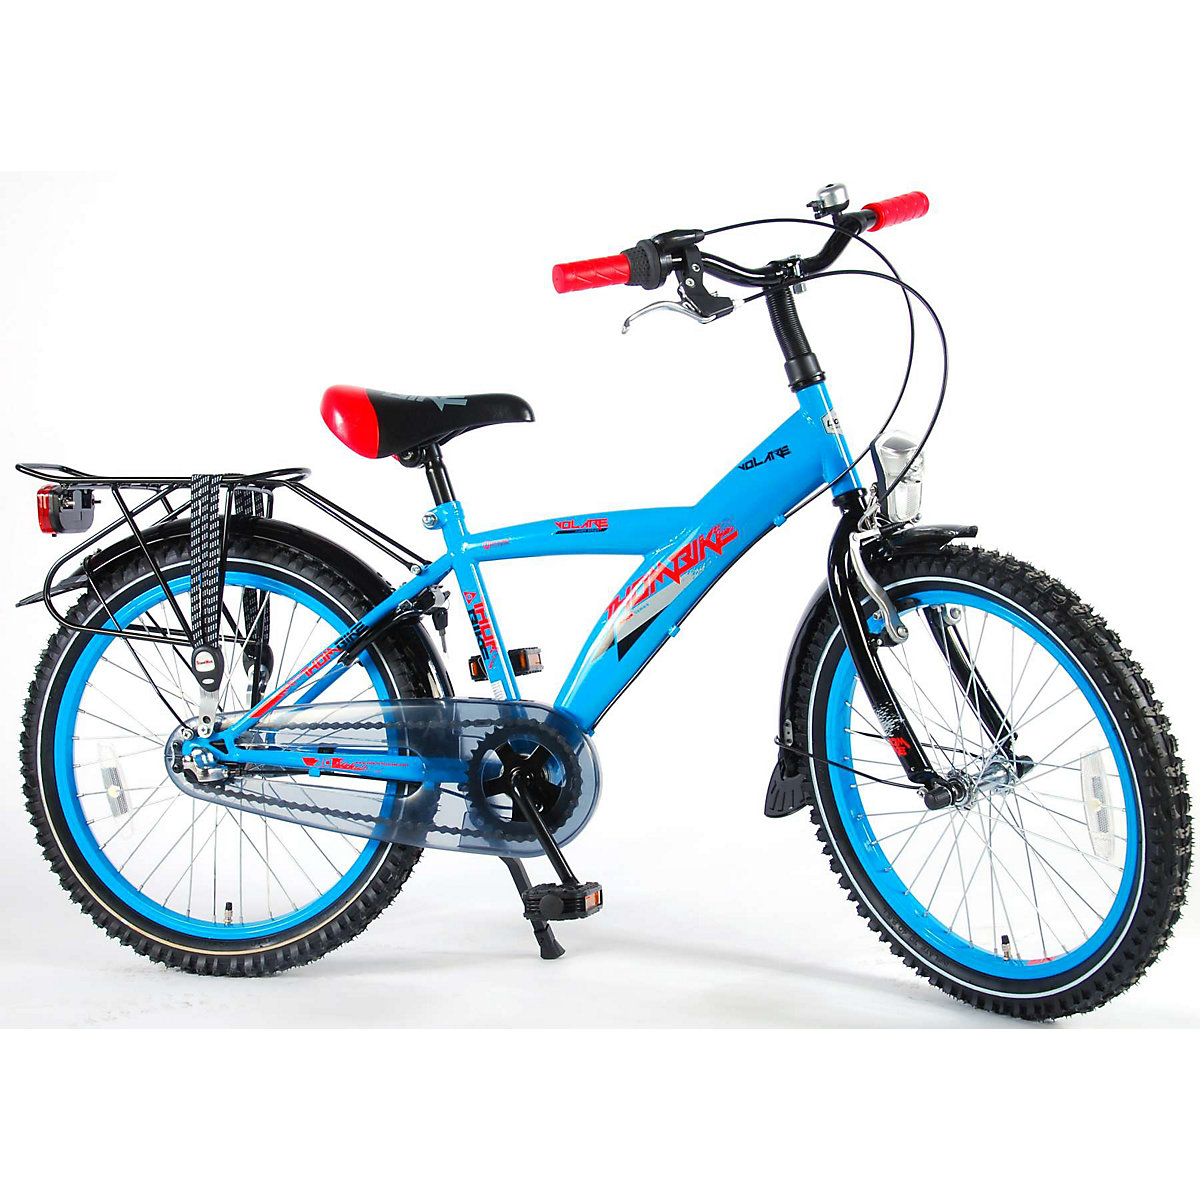 thombike city jungenfahrrad 20 zoll shimano nexus 3 gang blau volare mytoys. Black Bedroom Furniture Sets. Home Design Ideas